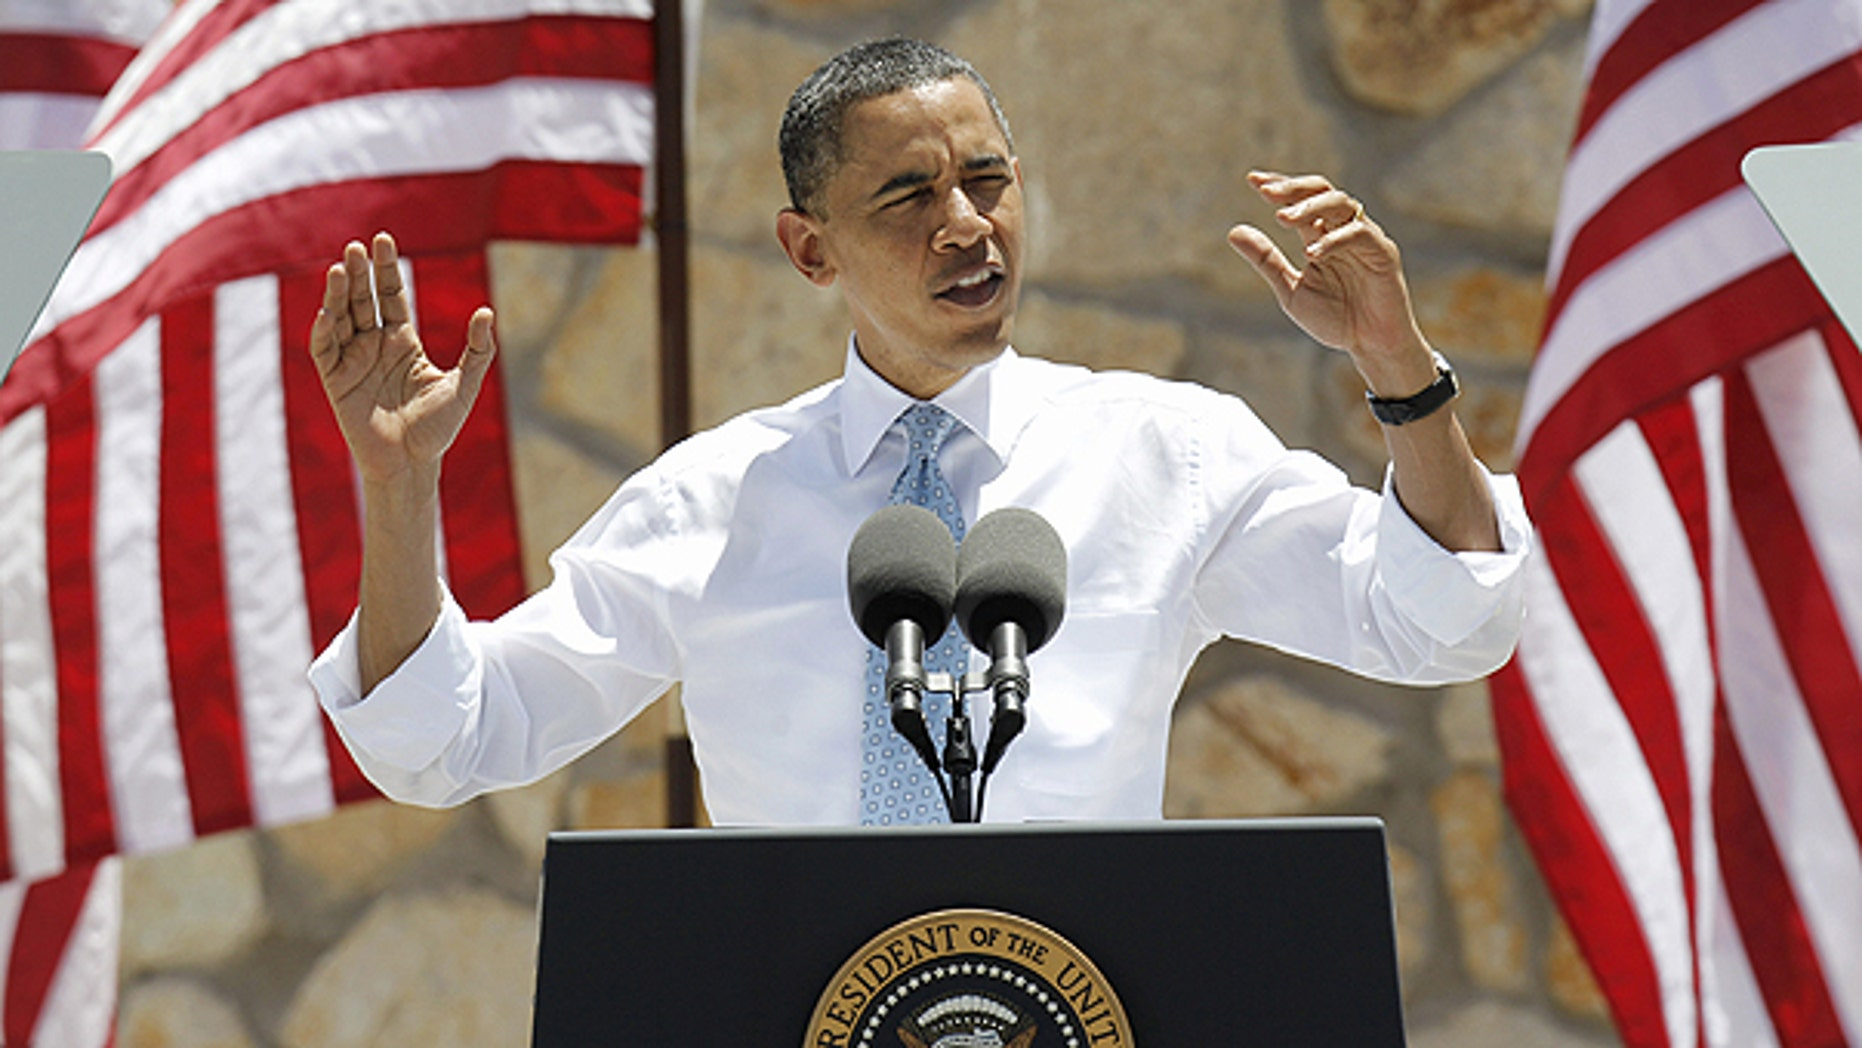 May 10: President Obama gestures while speaking about immigration reform in El Paso, Texas. With a re-election campaign looming, Obama is pushing Congress to overhaul the immigration system, but lawmakers seems to have little appetite to take on the issue.